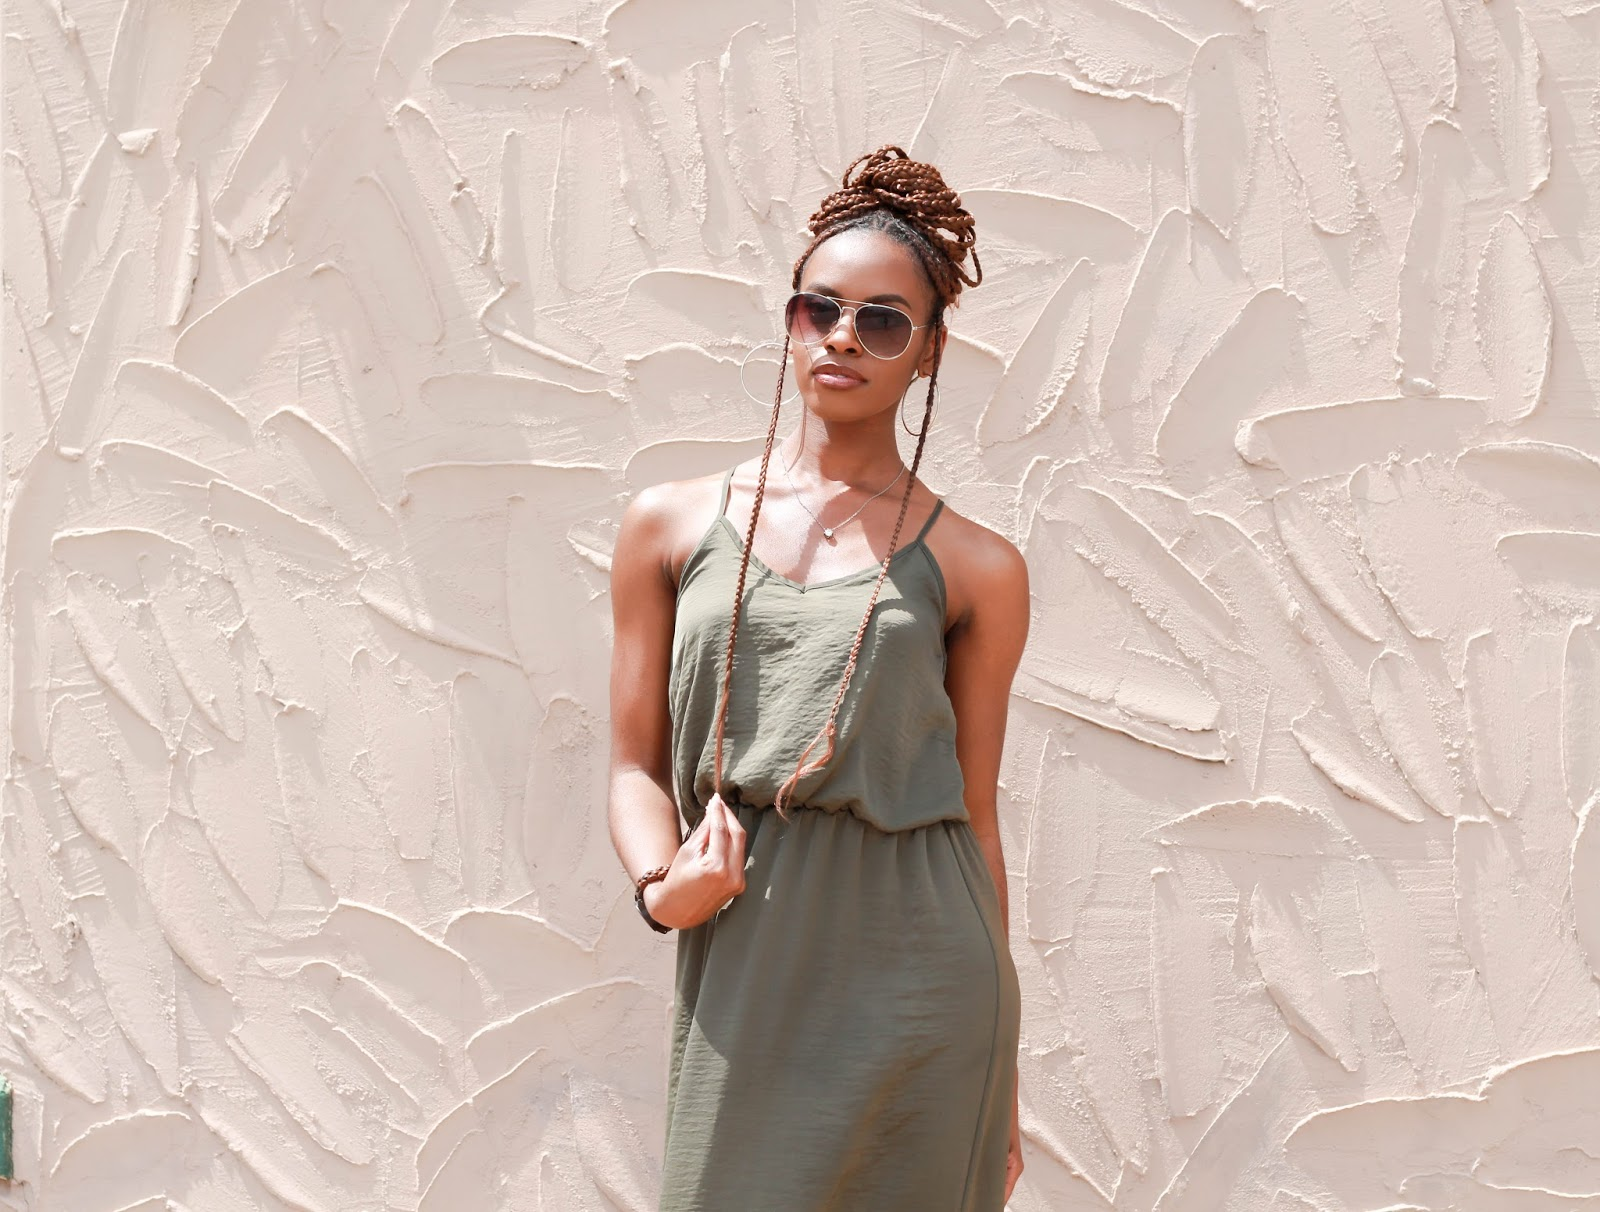 Green Dress, Green Maxi Dress, Army Green Maxi Dress, Army Green Dress